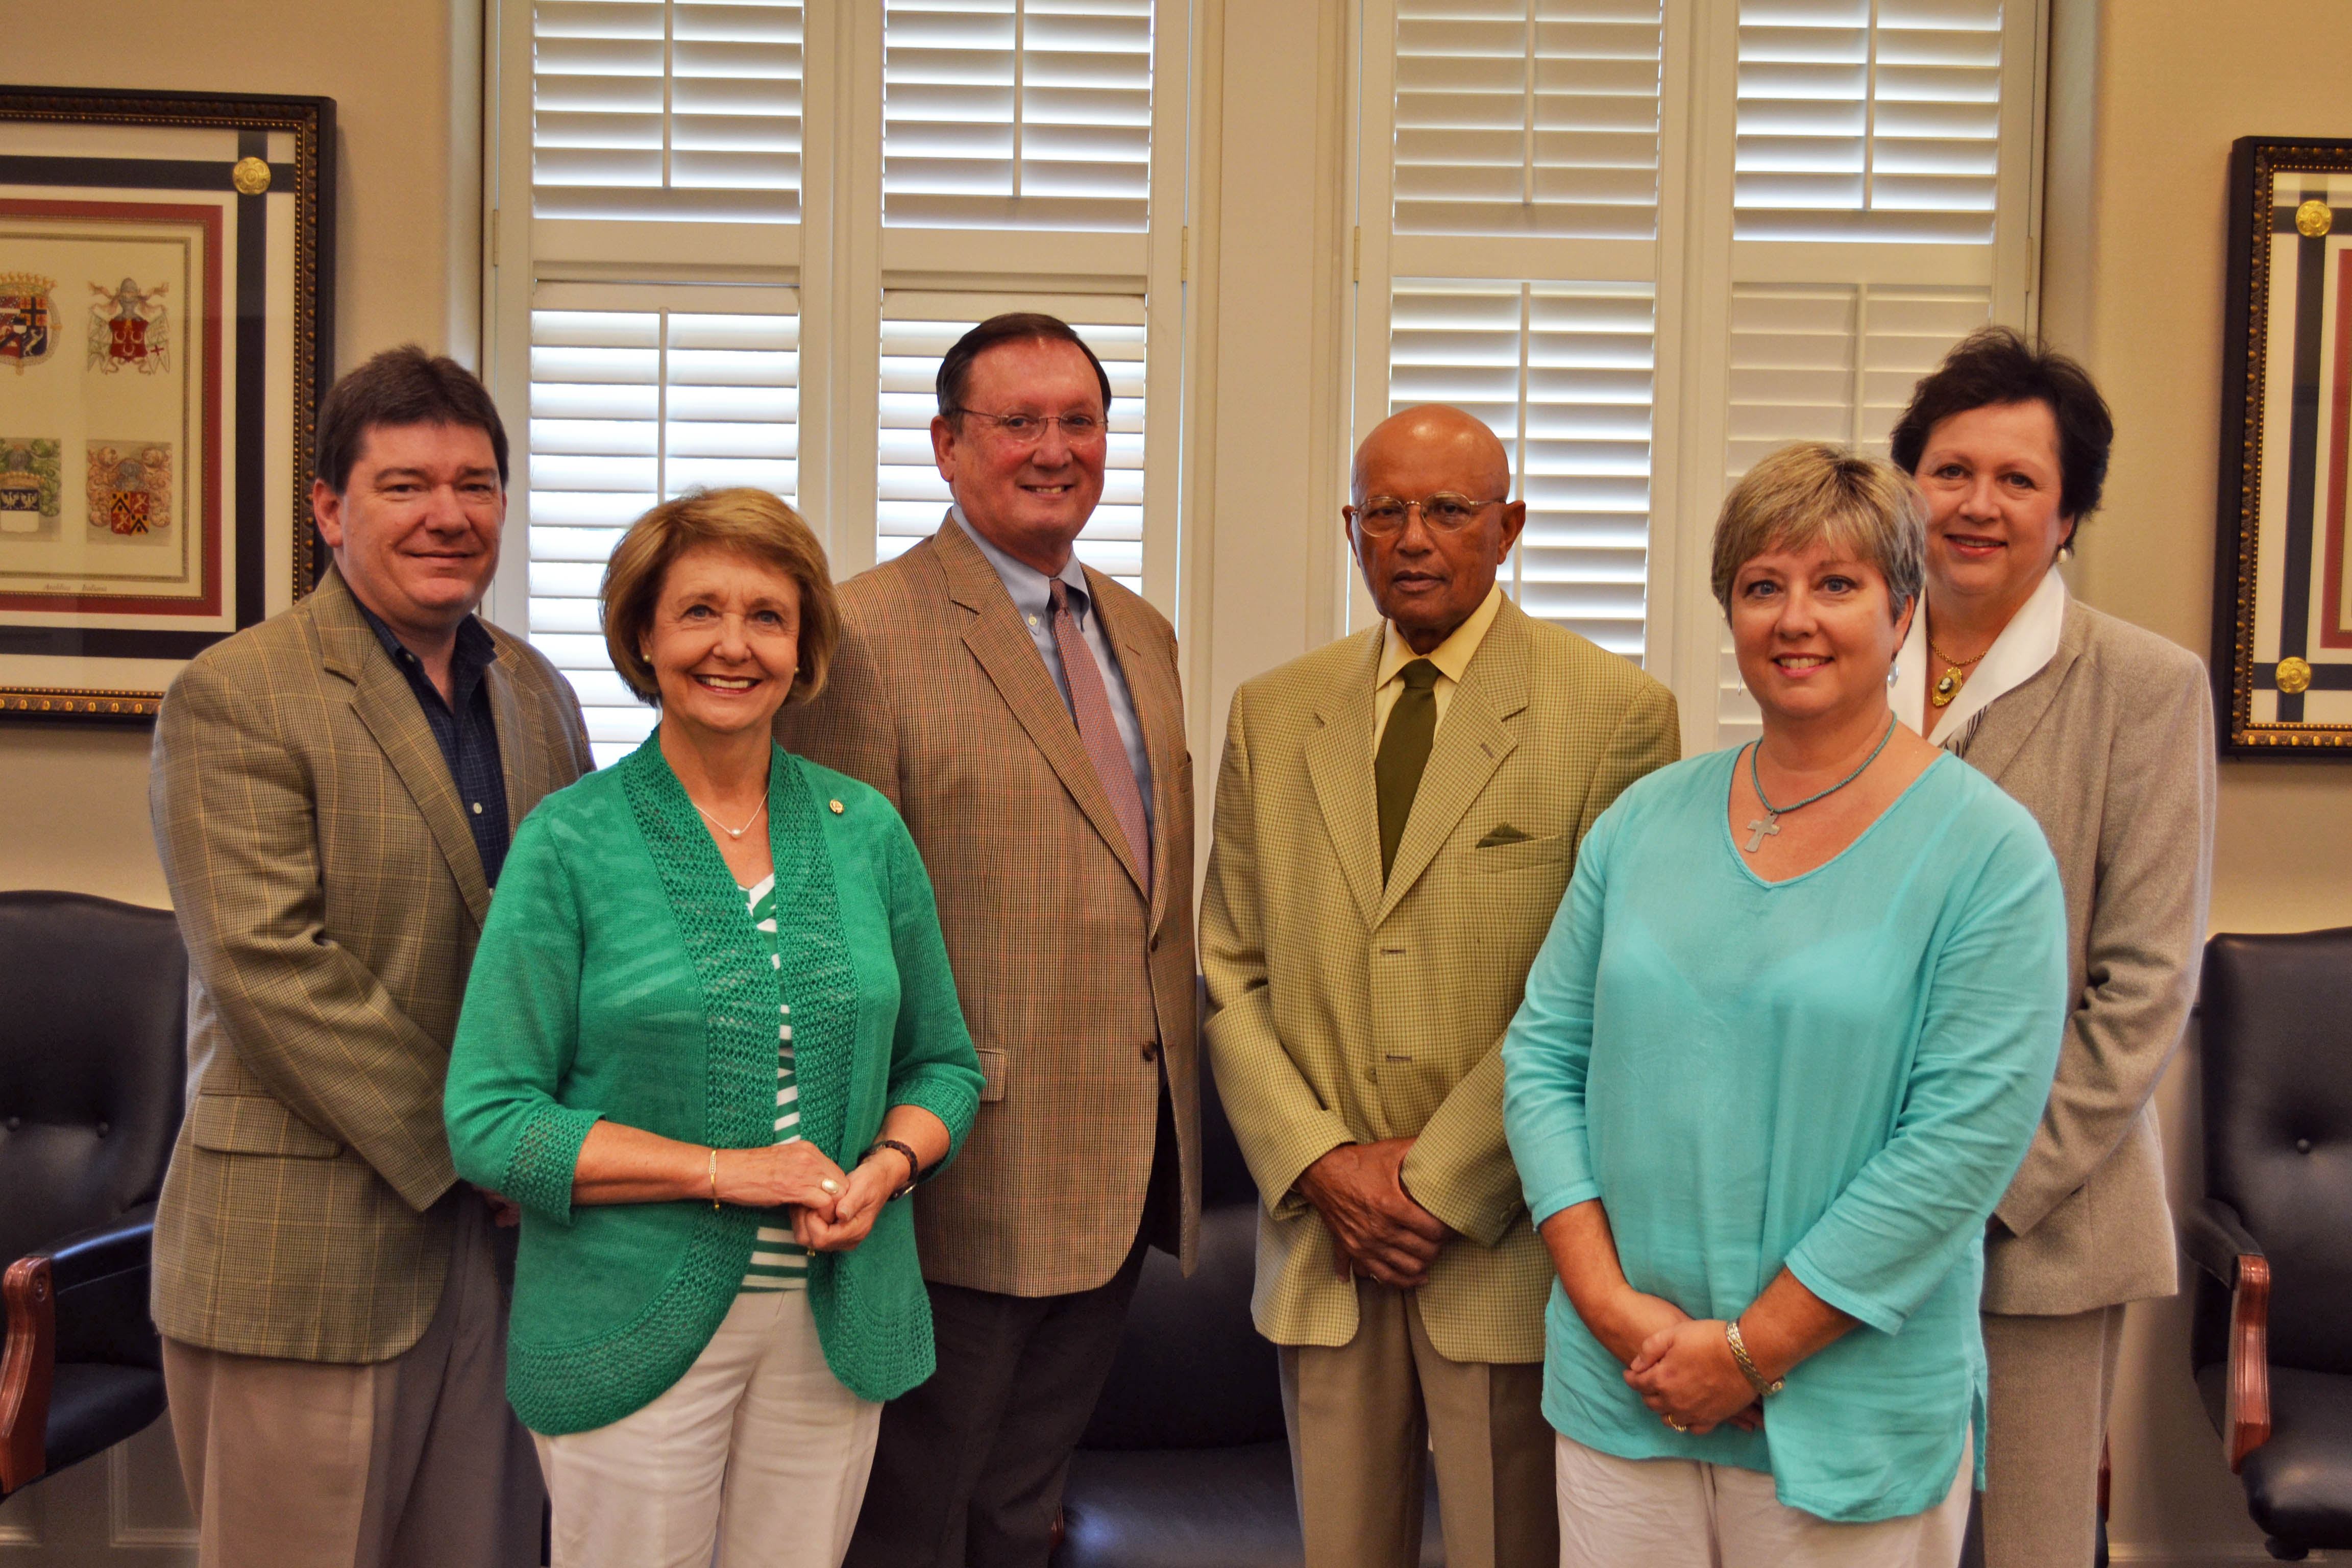 PHOTO:  The advisory board's members include Vicki Fioranelli, Dr. Cass Pennington, Peter Jernberg, Beverly Johnston, and Dean of the College of Education and Human Sciences, Leslie Griffin. Not pictured is Butch Scipper. Gary Bouse was present as an Alumni Foundation representative.